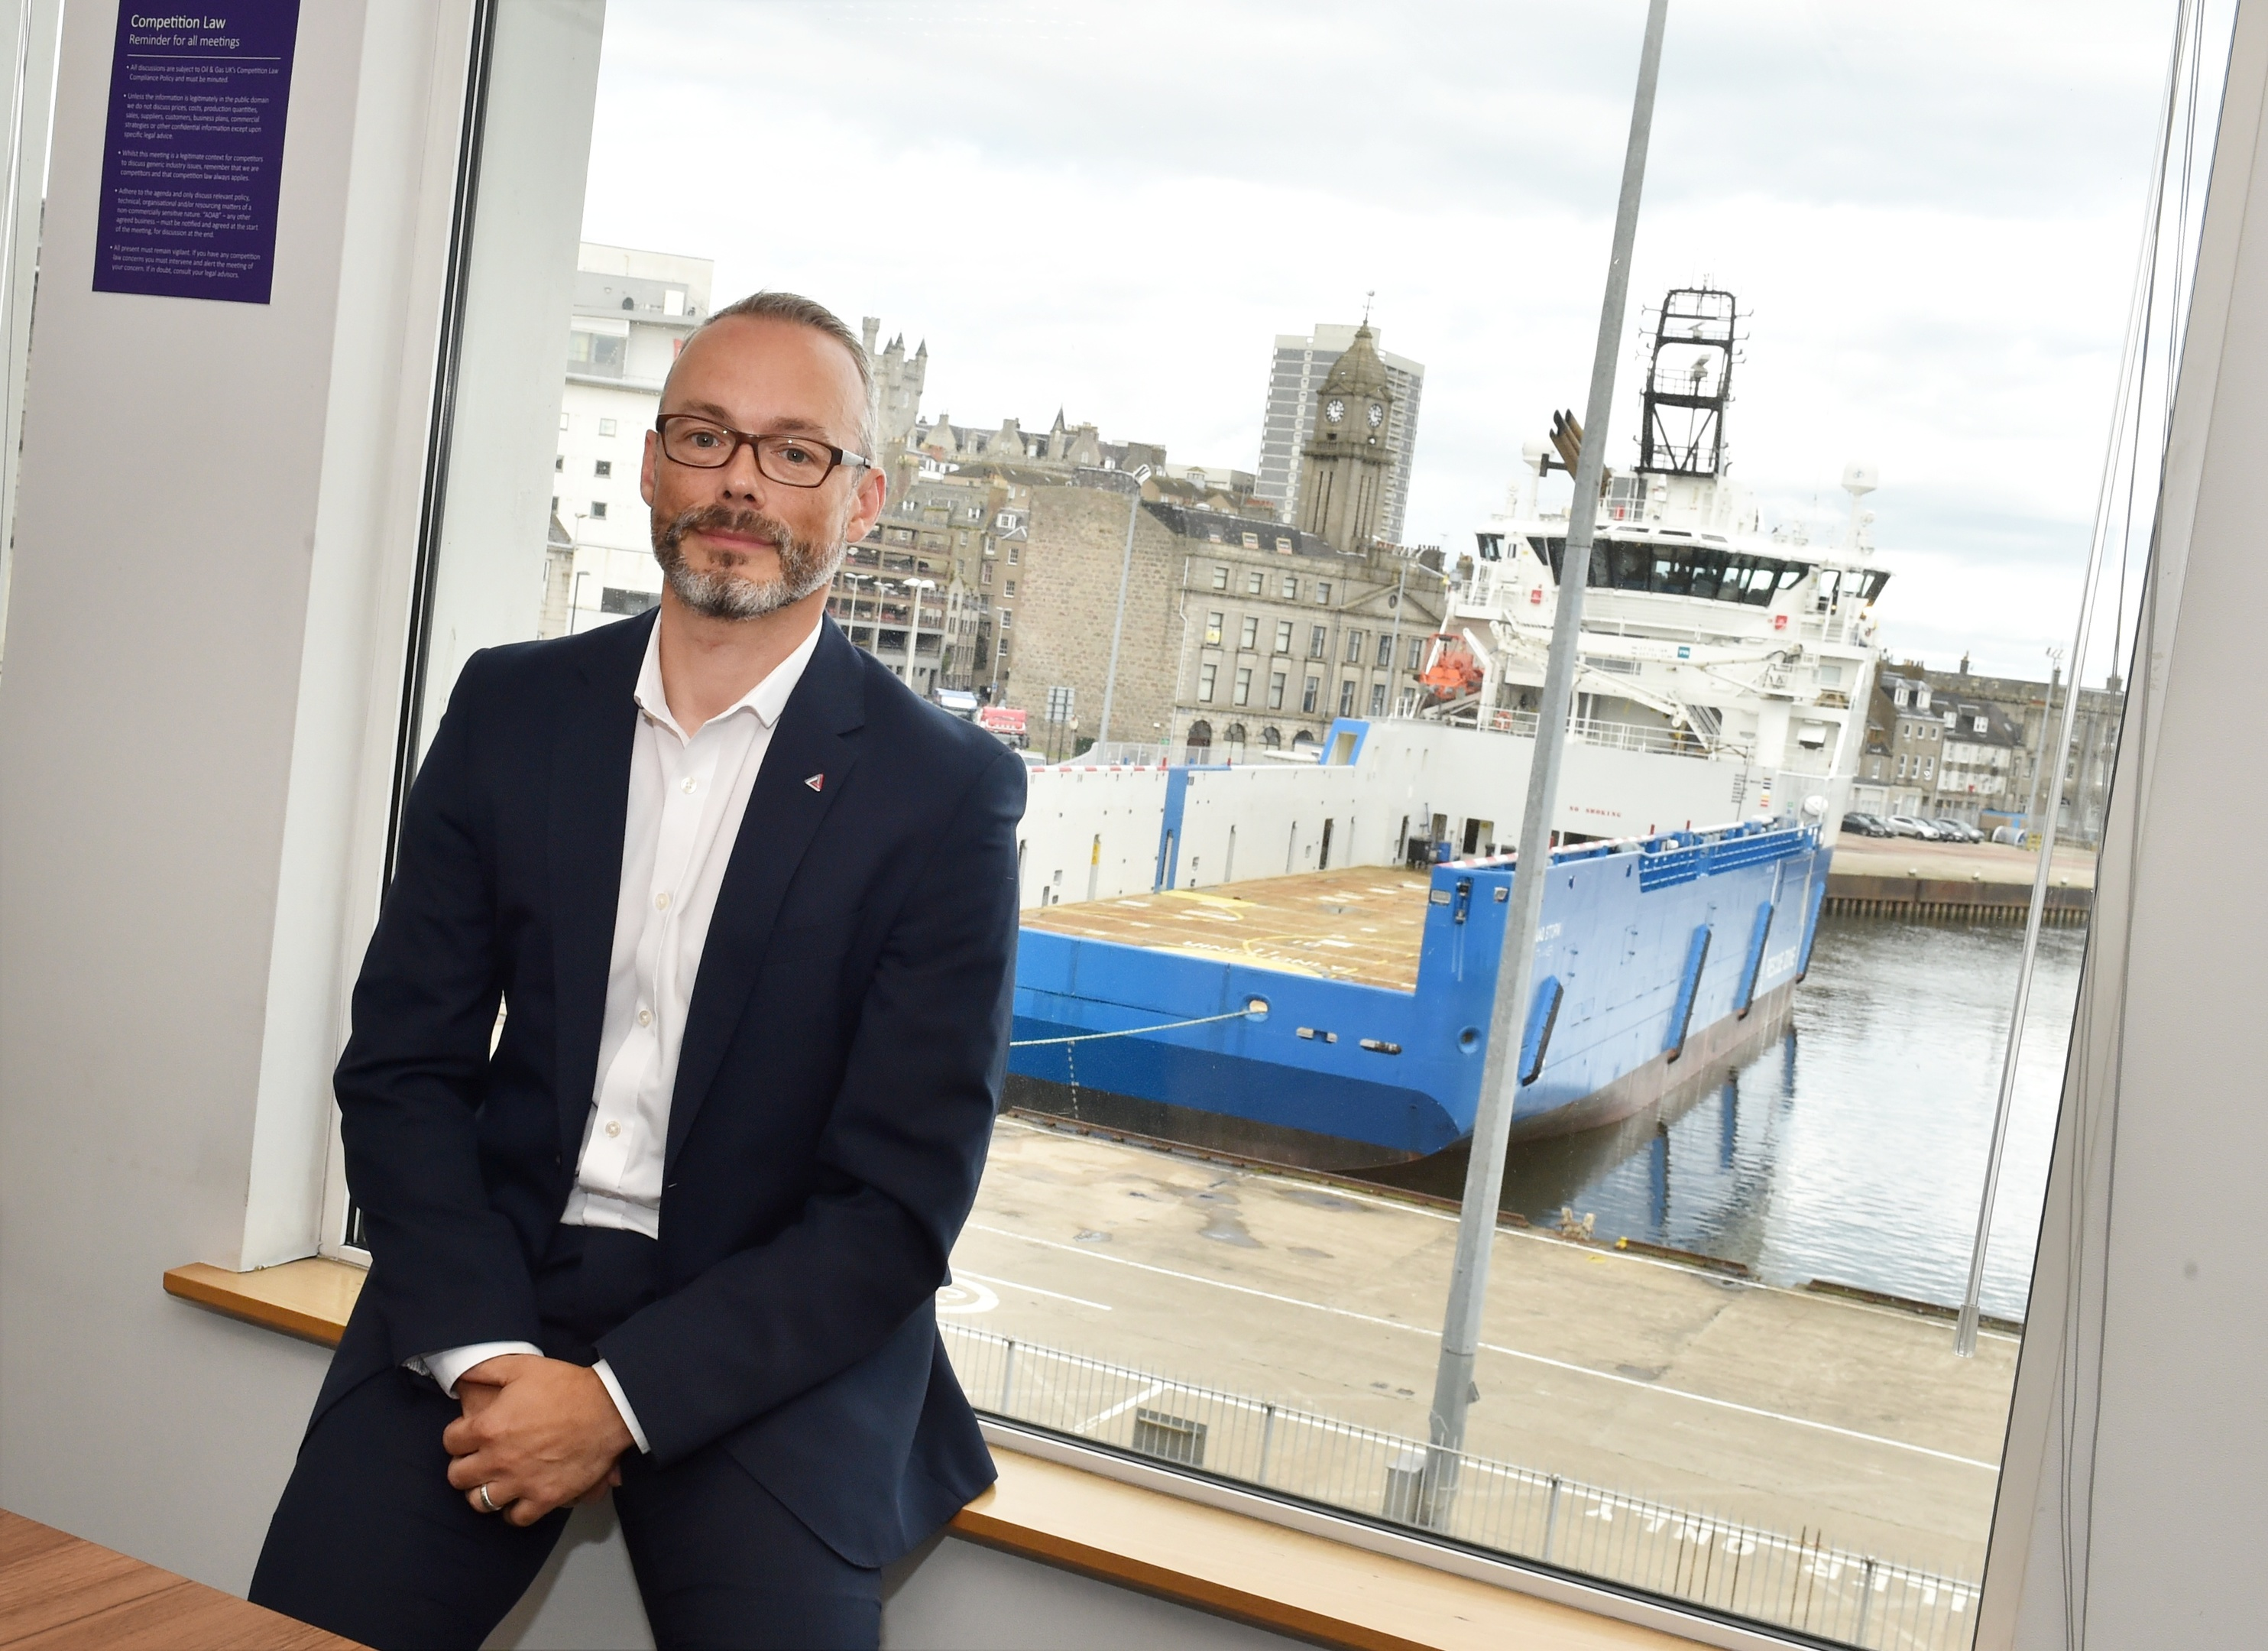 Chief Executive Les Linklater at Step Change in Safety at The Exchange 2 in Market Street, Aberdeen. Picture by COLIN RENNIE   October 9 2017.